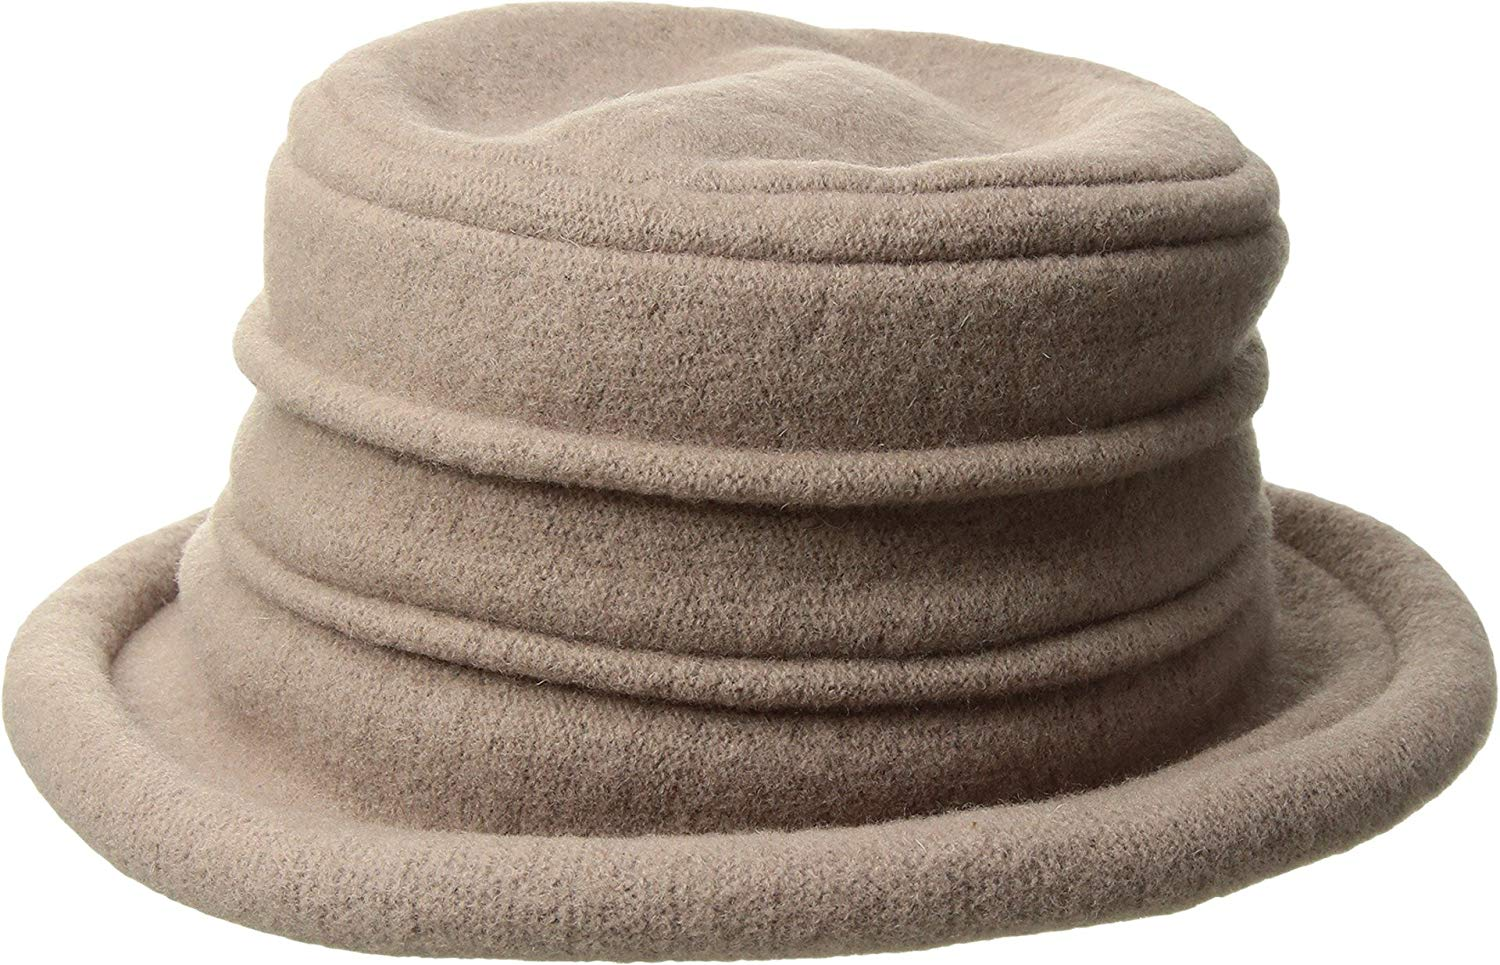 4a5f9d59a Buy Scala Collezione Lw399-Plum 3/Packable Wool Cloche Hat in Cheap ...